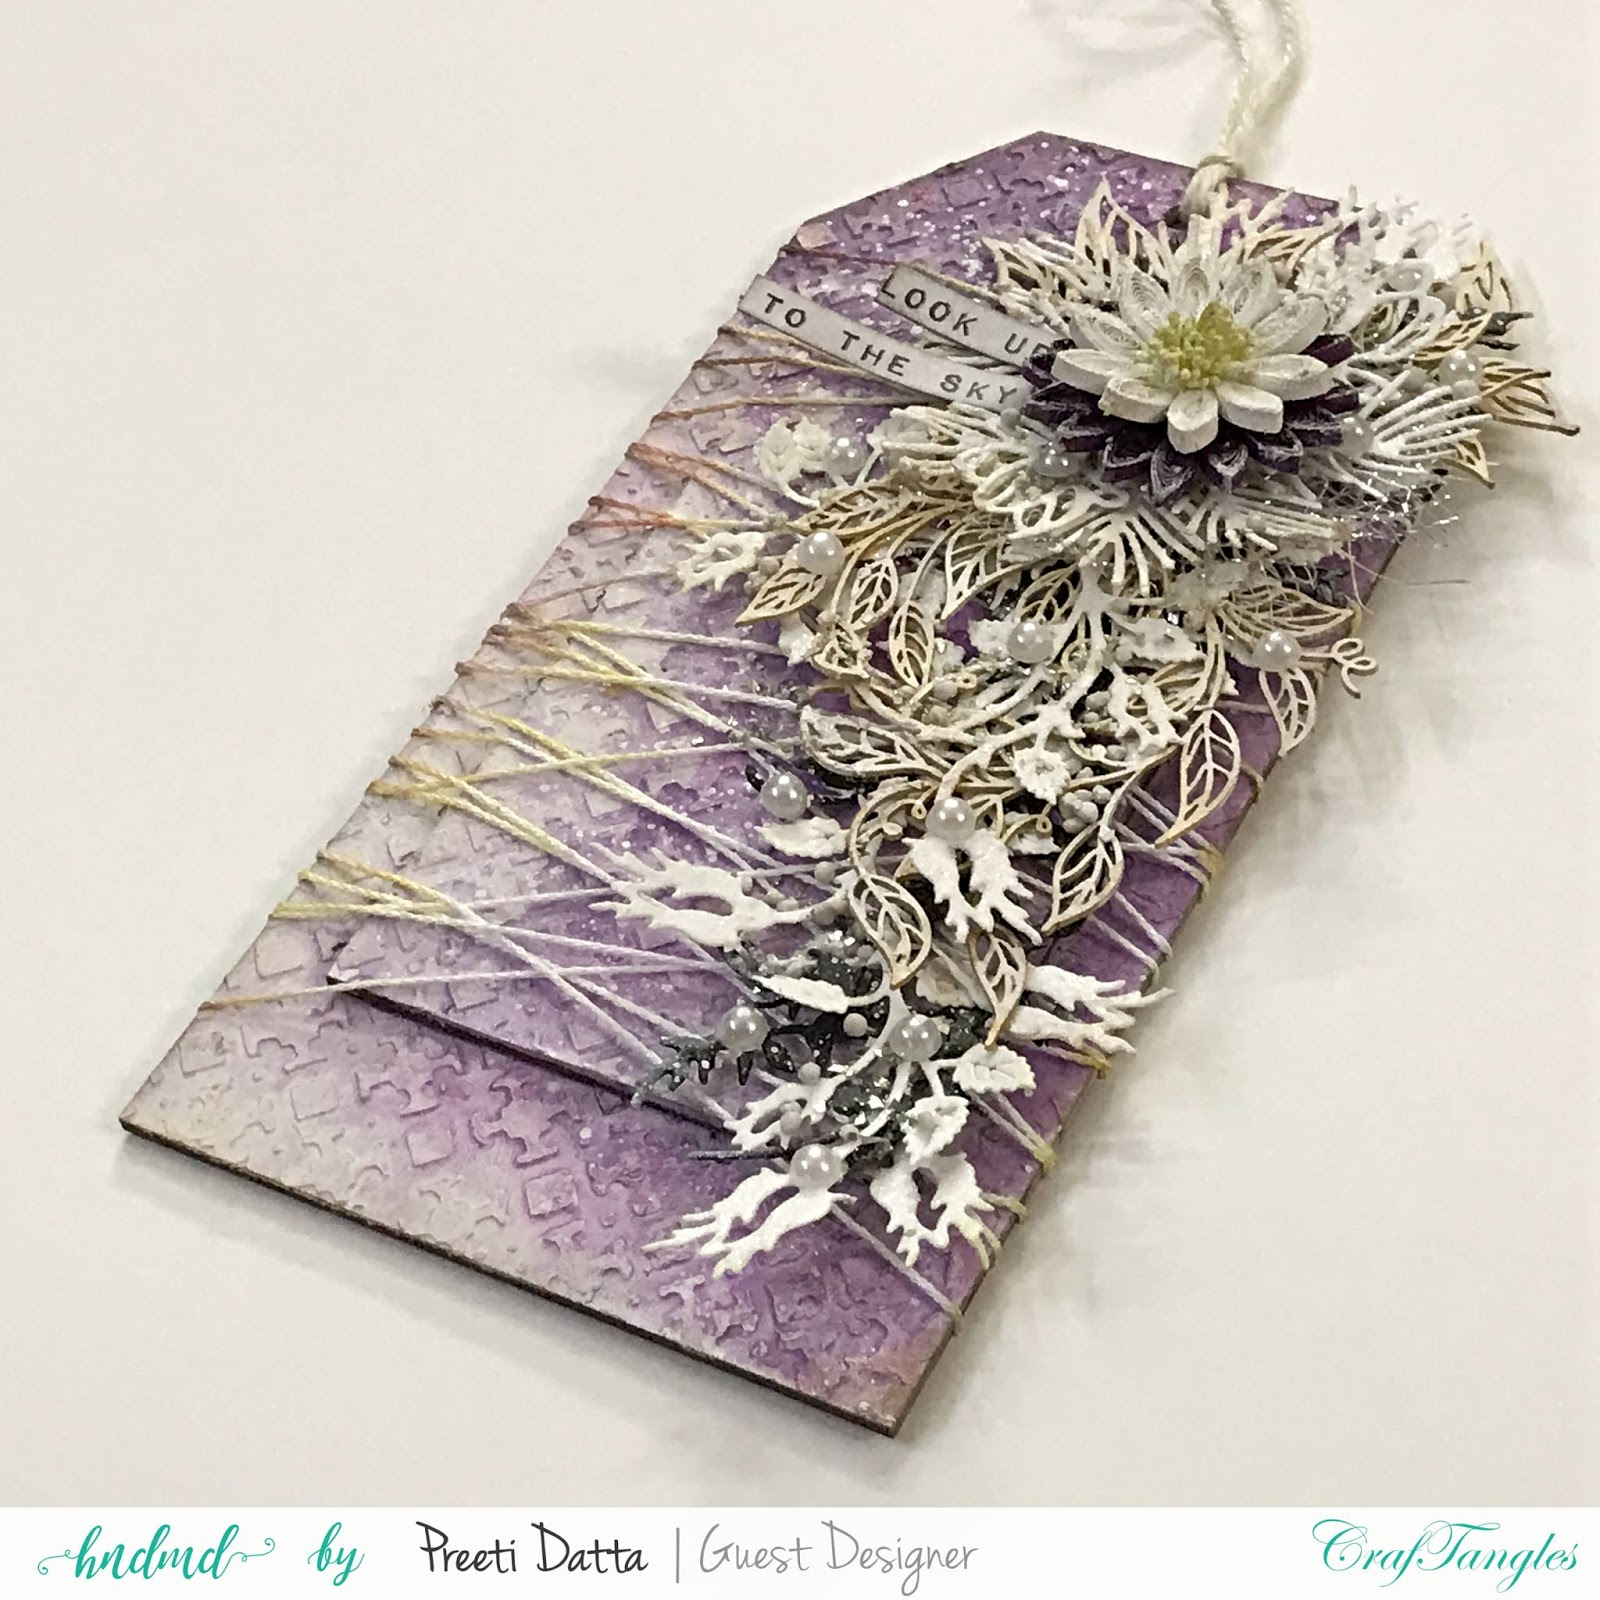 Floral Mixed Media Tag (with Pictorial) by Preeti Datta 15